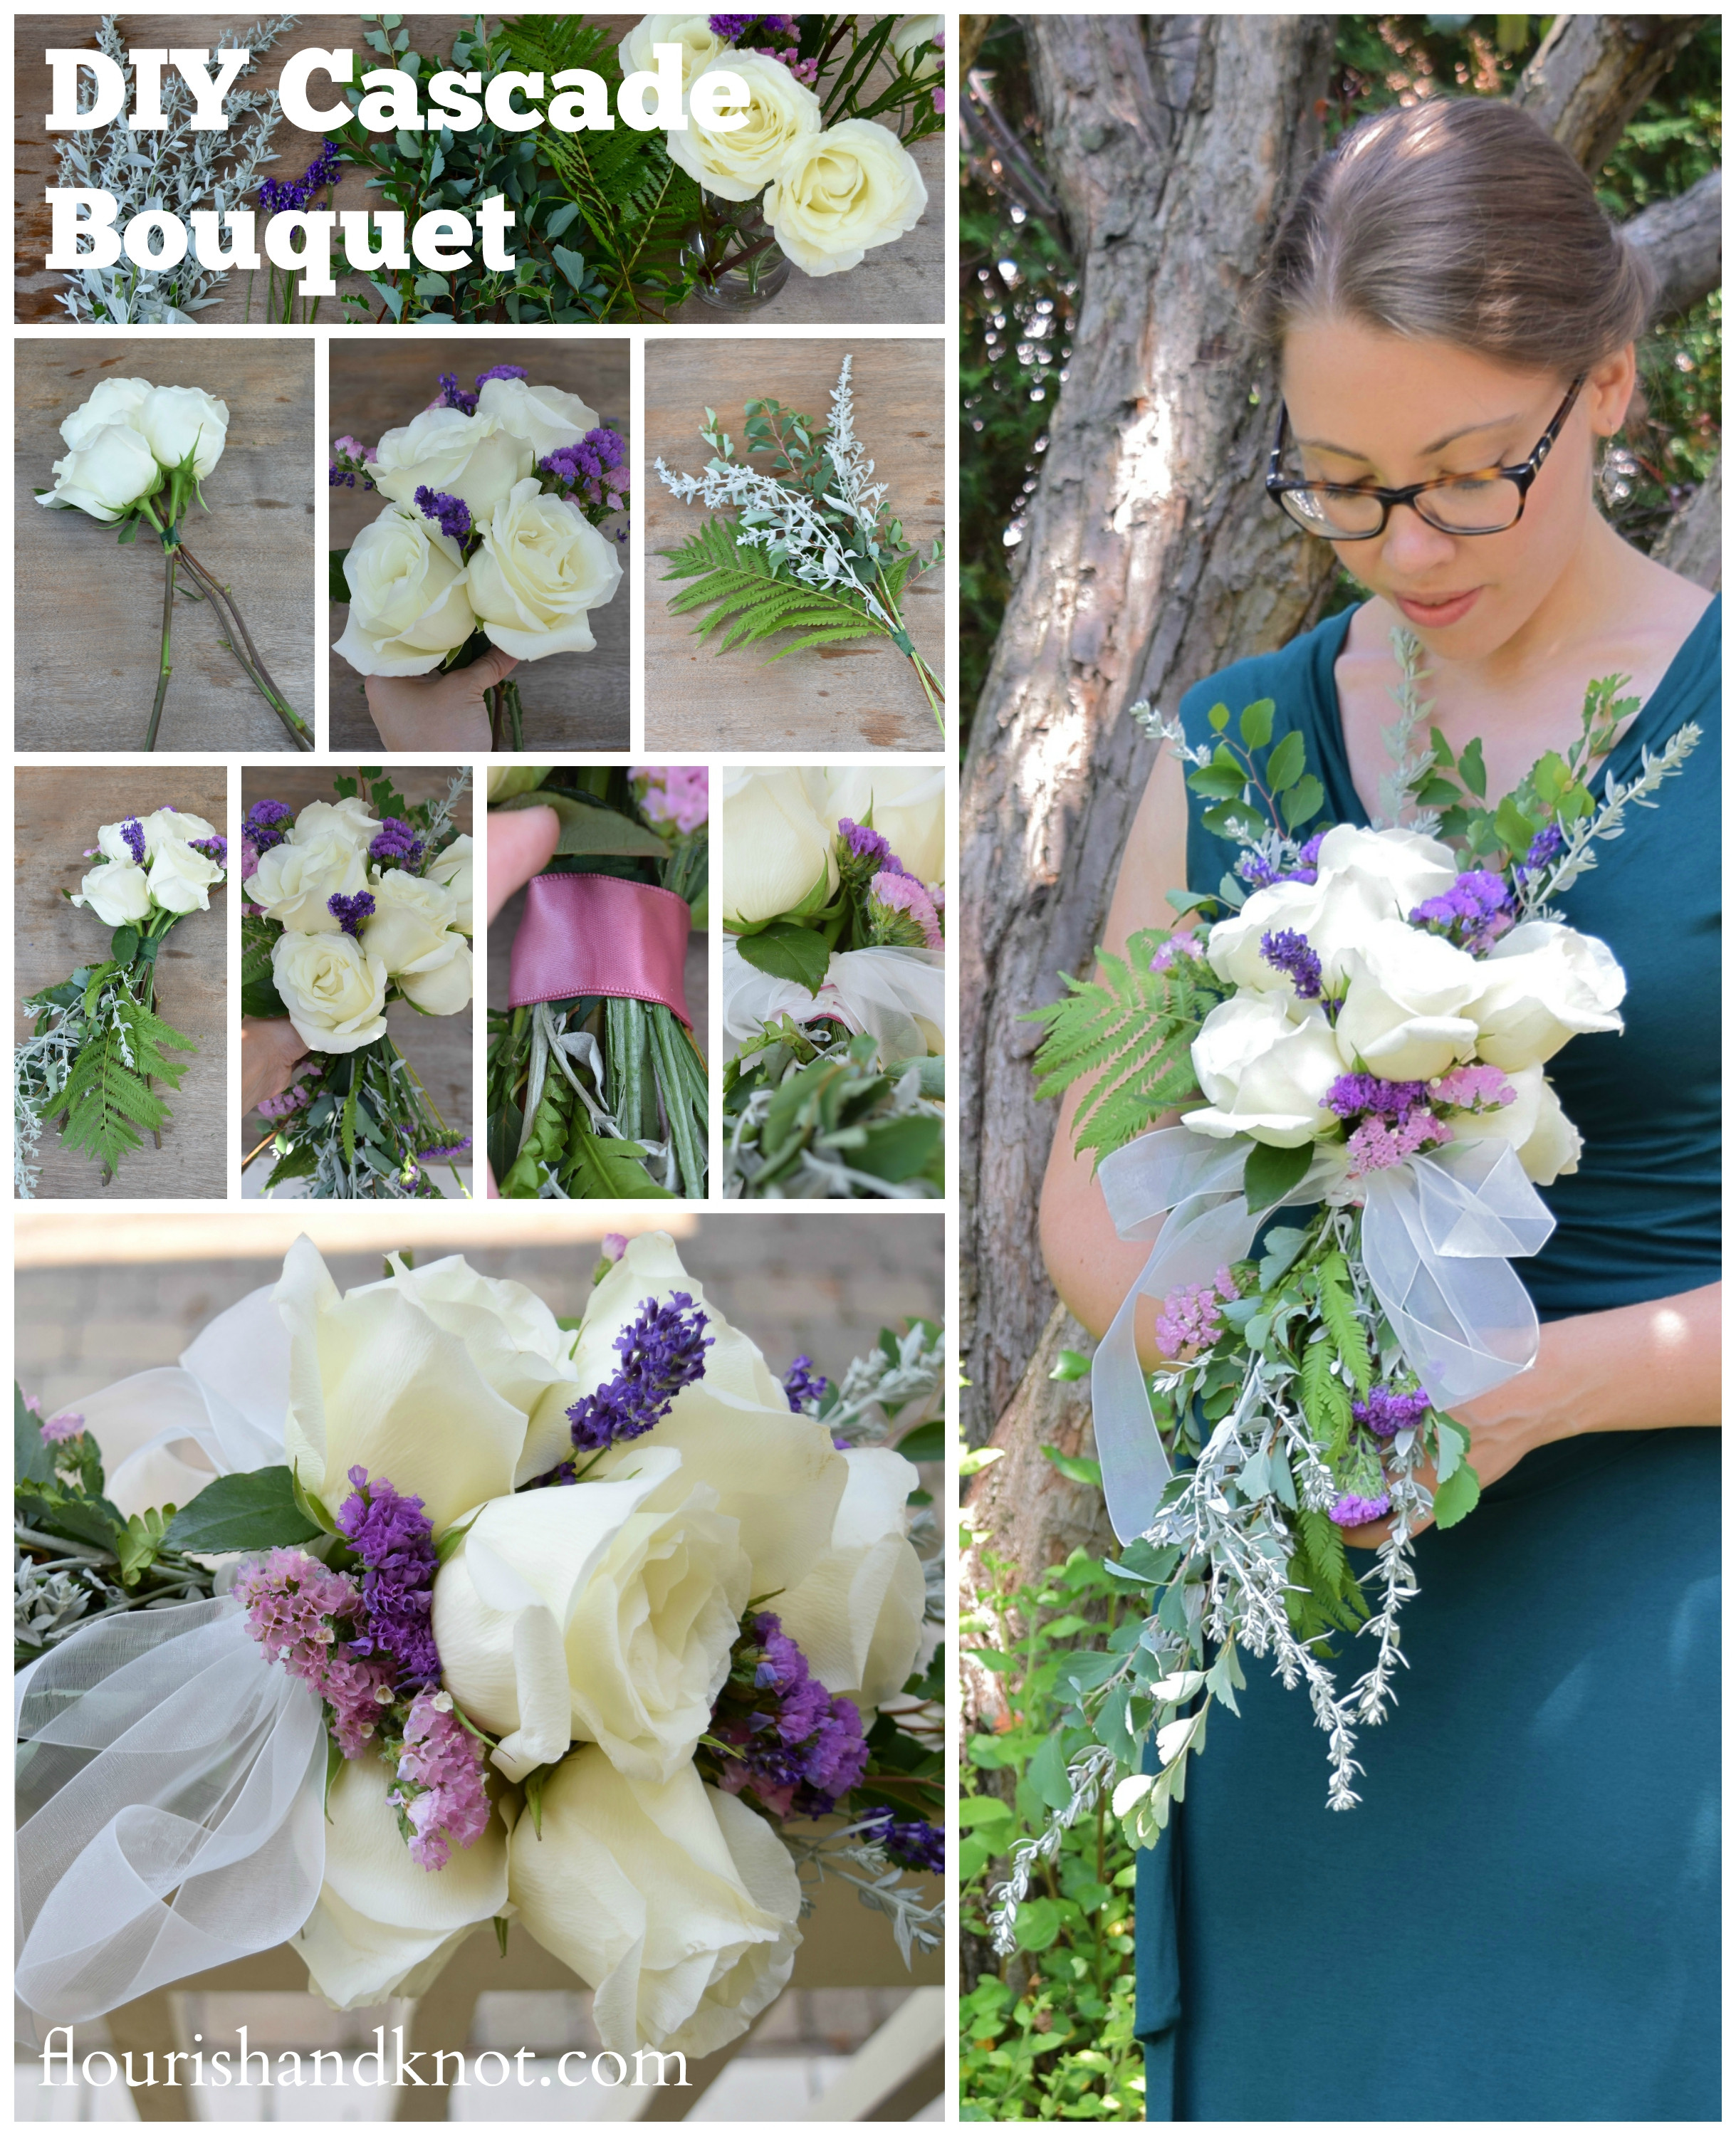 Best ideas about DIY Flower Wedding . Save or Pin How to create a cascade bouquet Now.